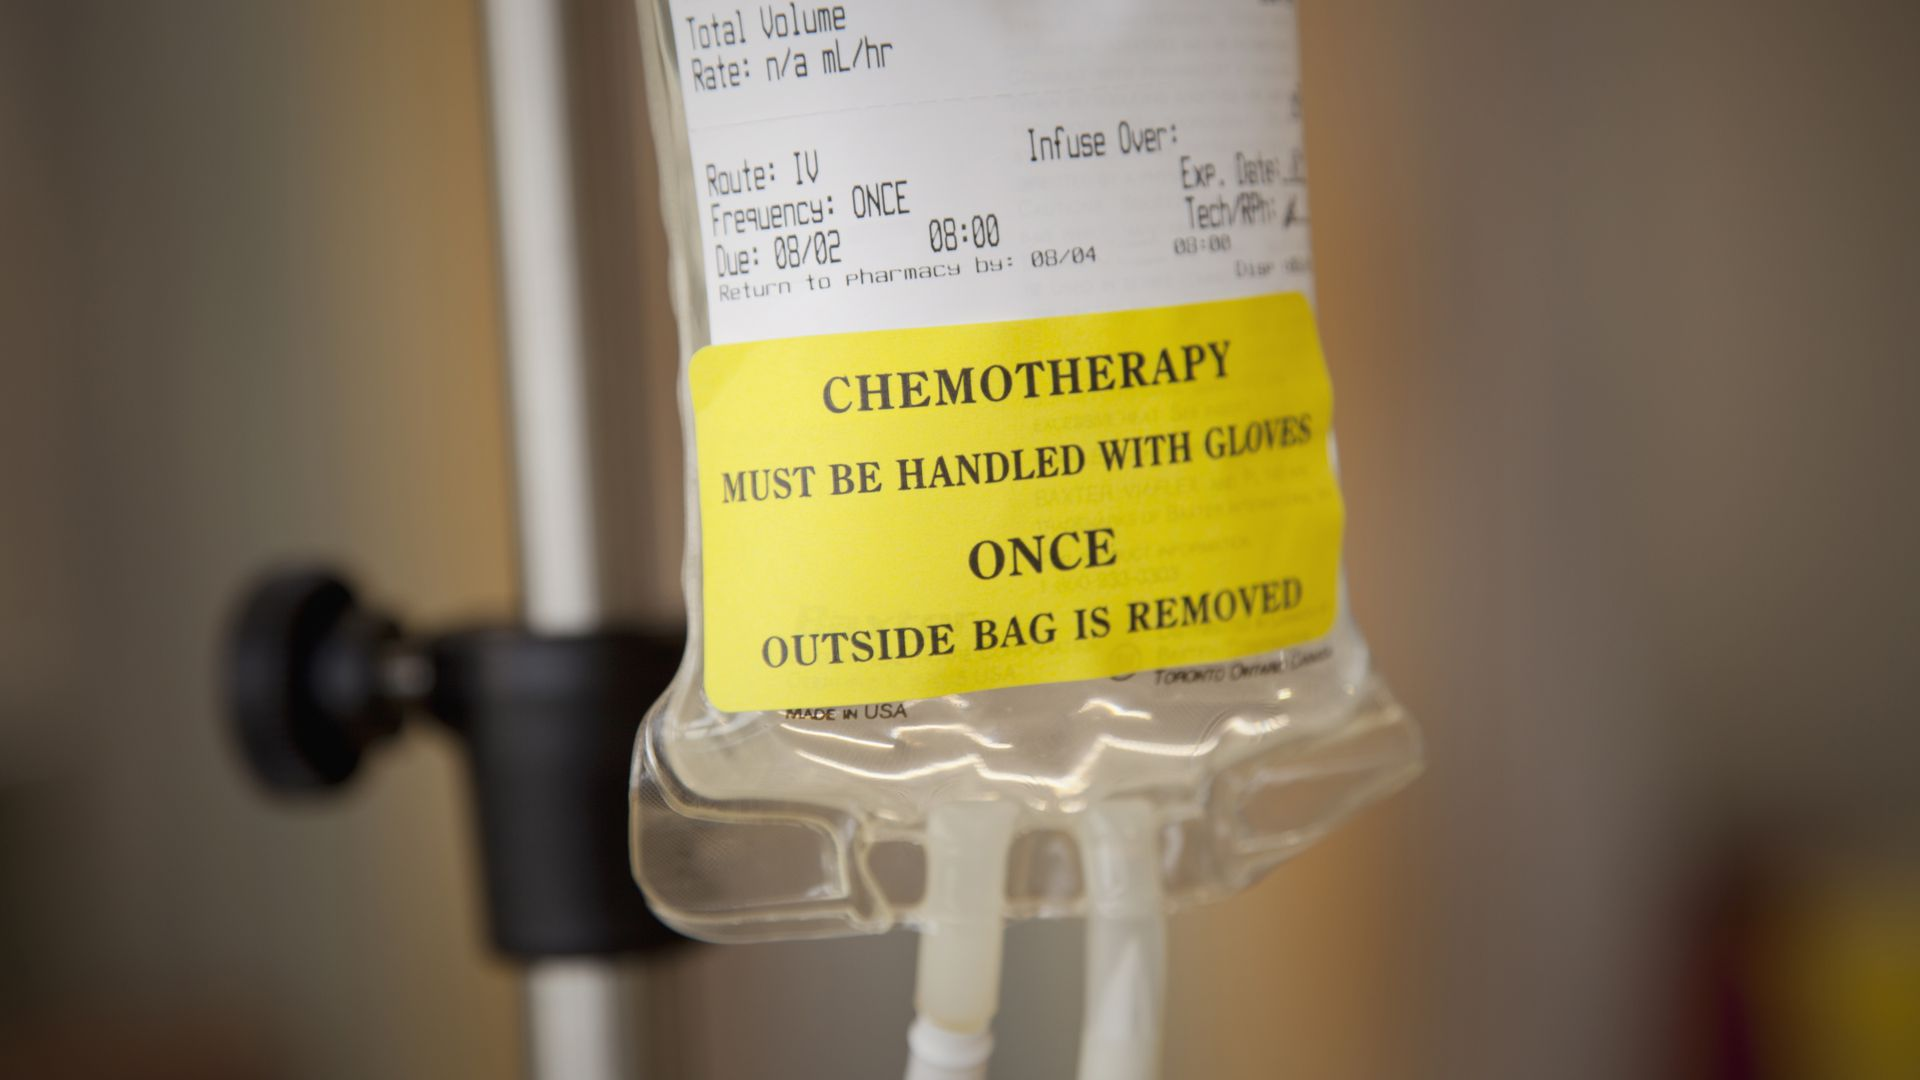 Cancer chemotherapy bag